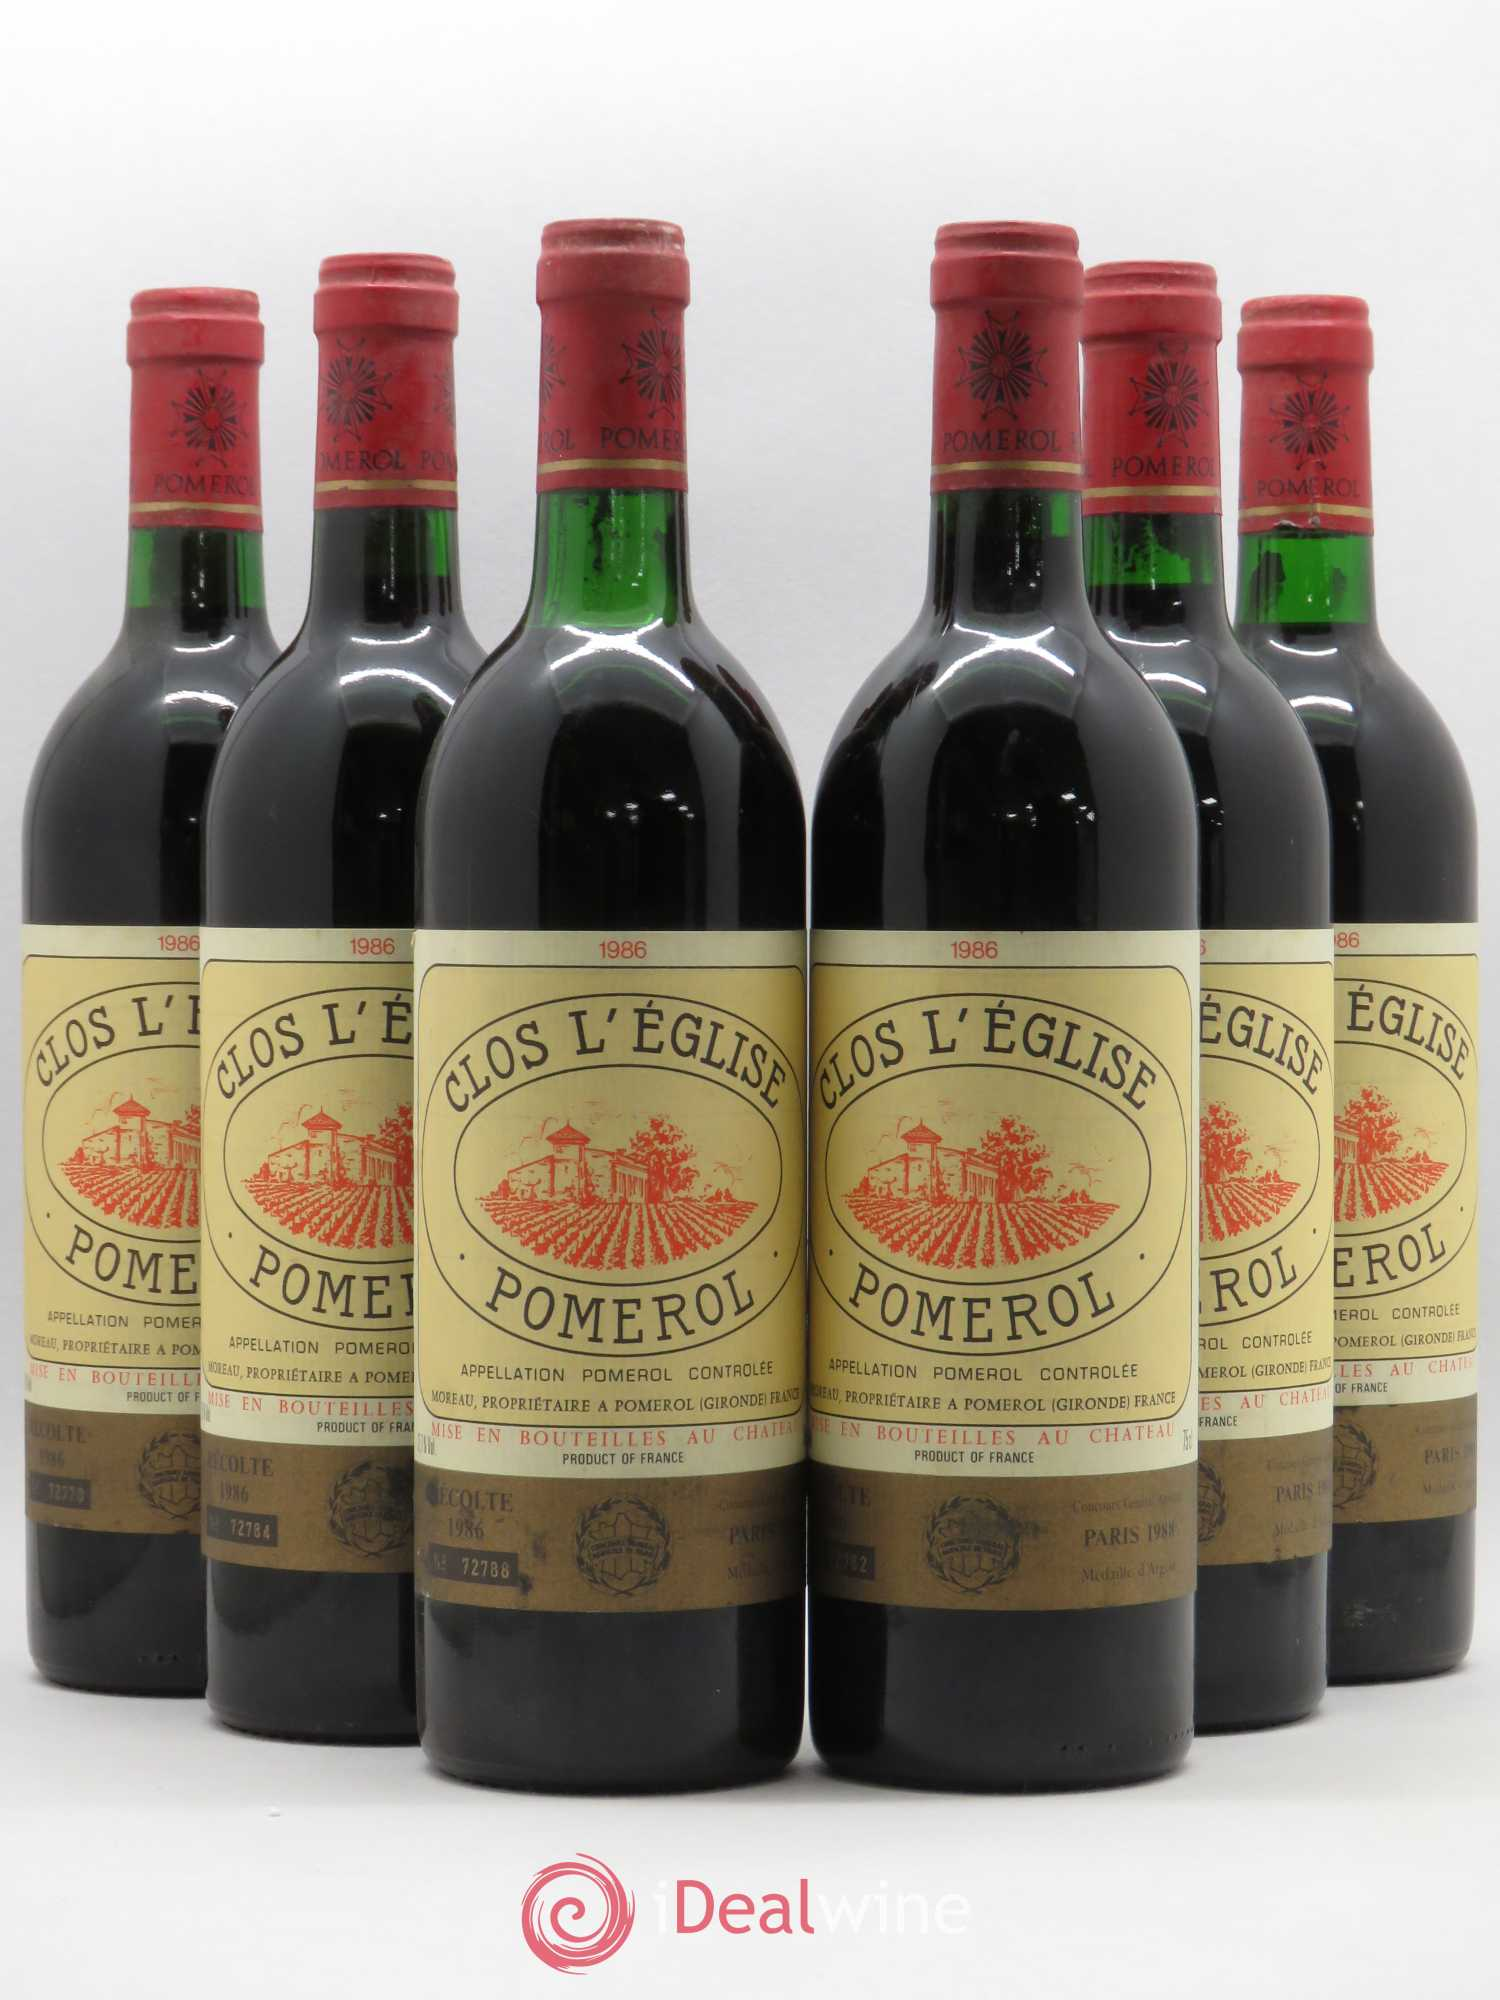 Clos l'Église (no reserve) 1986 - Lot of 6 Bottles